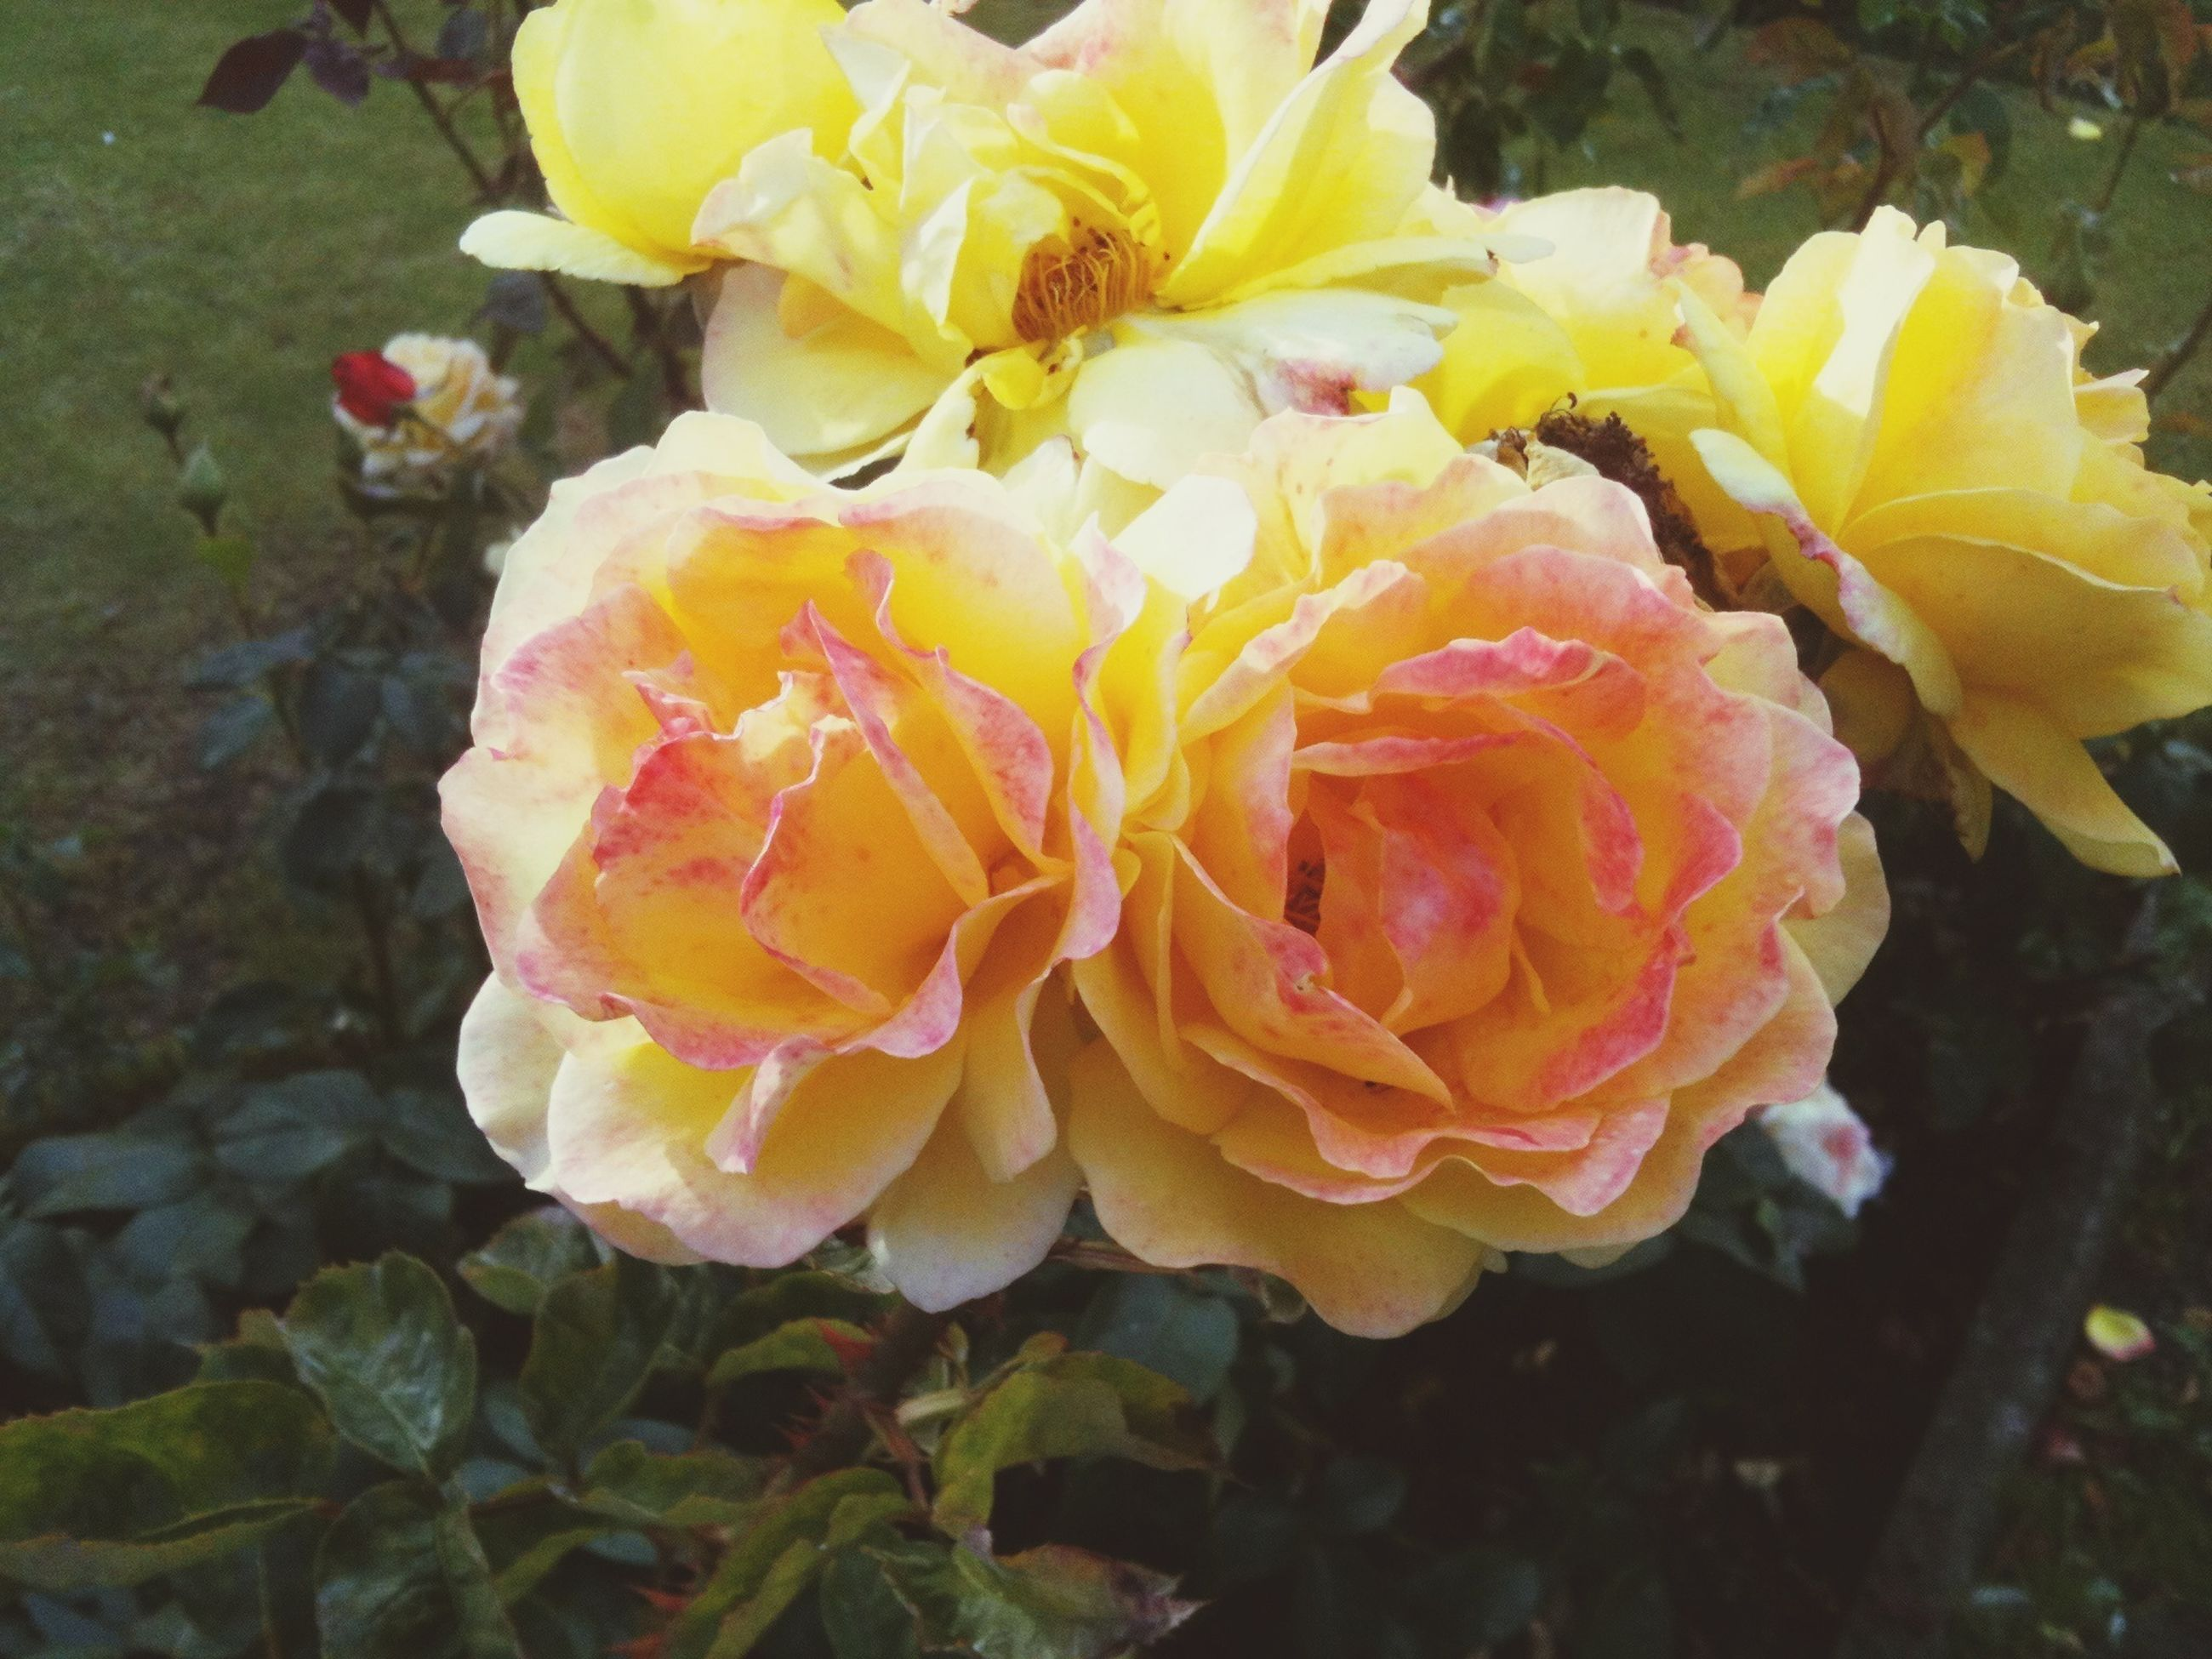 flower, petal, flower head, fragility, freshness, rose - flower, beauty in nature, close-up, blooming, growth, nature, yellow, in bloom, plant, high angle view, water, rose, single flower, drop, wet